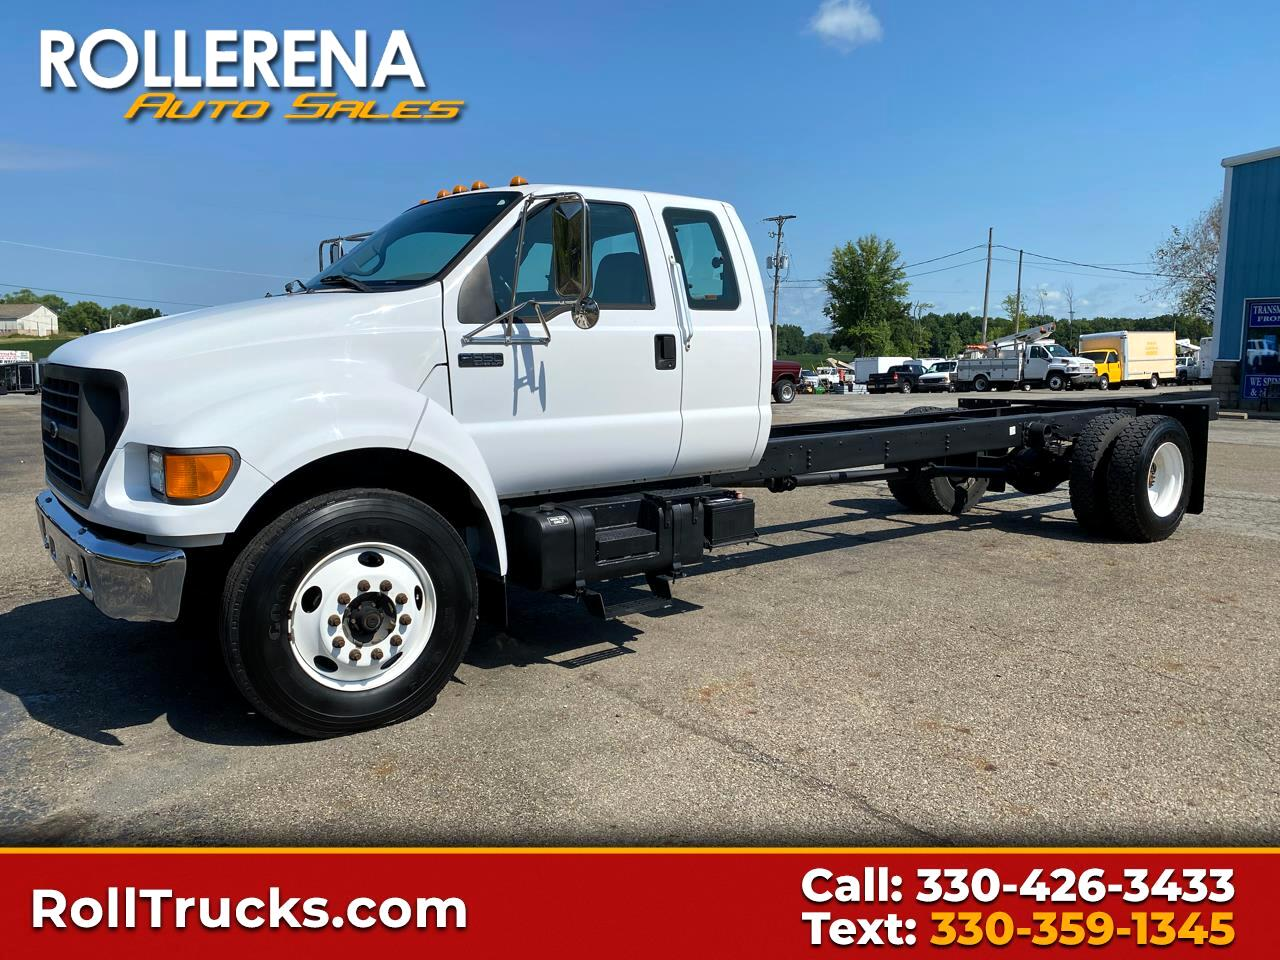 Ford Super Duty F-650 SuperCab XLT, 26,000 GVWR 2001